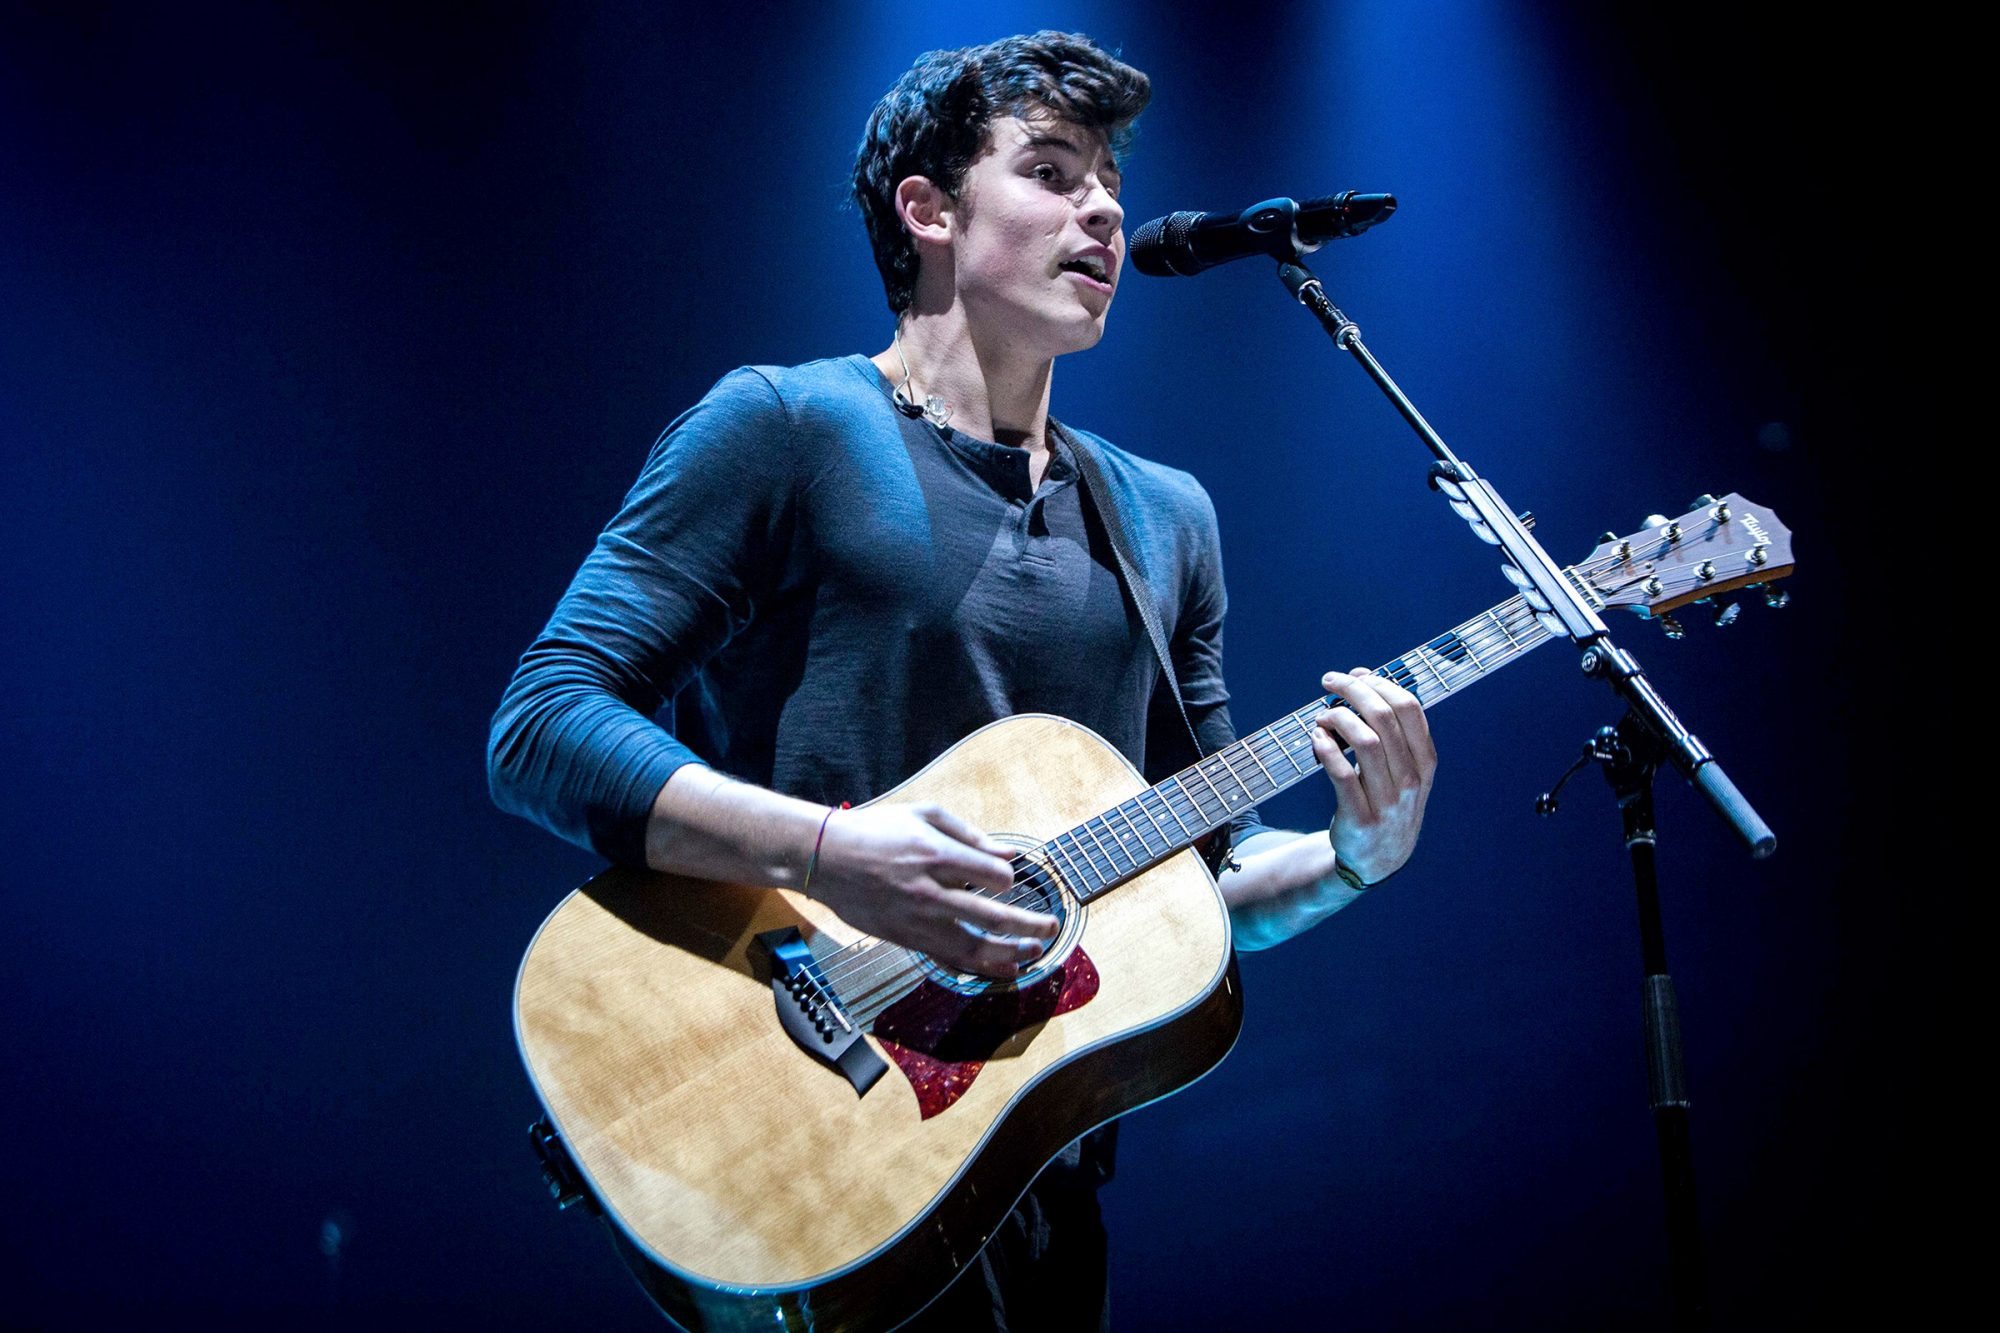 The Canadian singer and song-writer Shawn Mendes pictured on